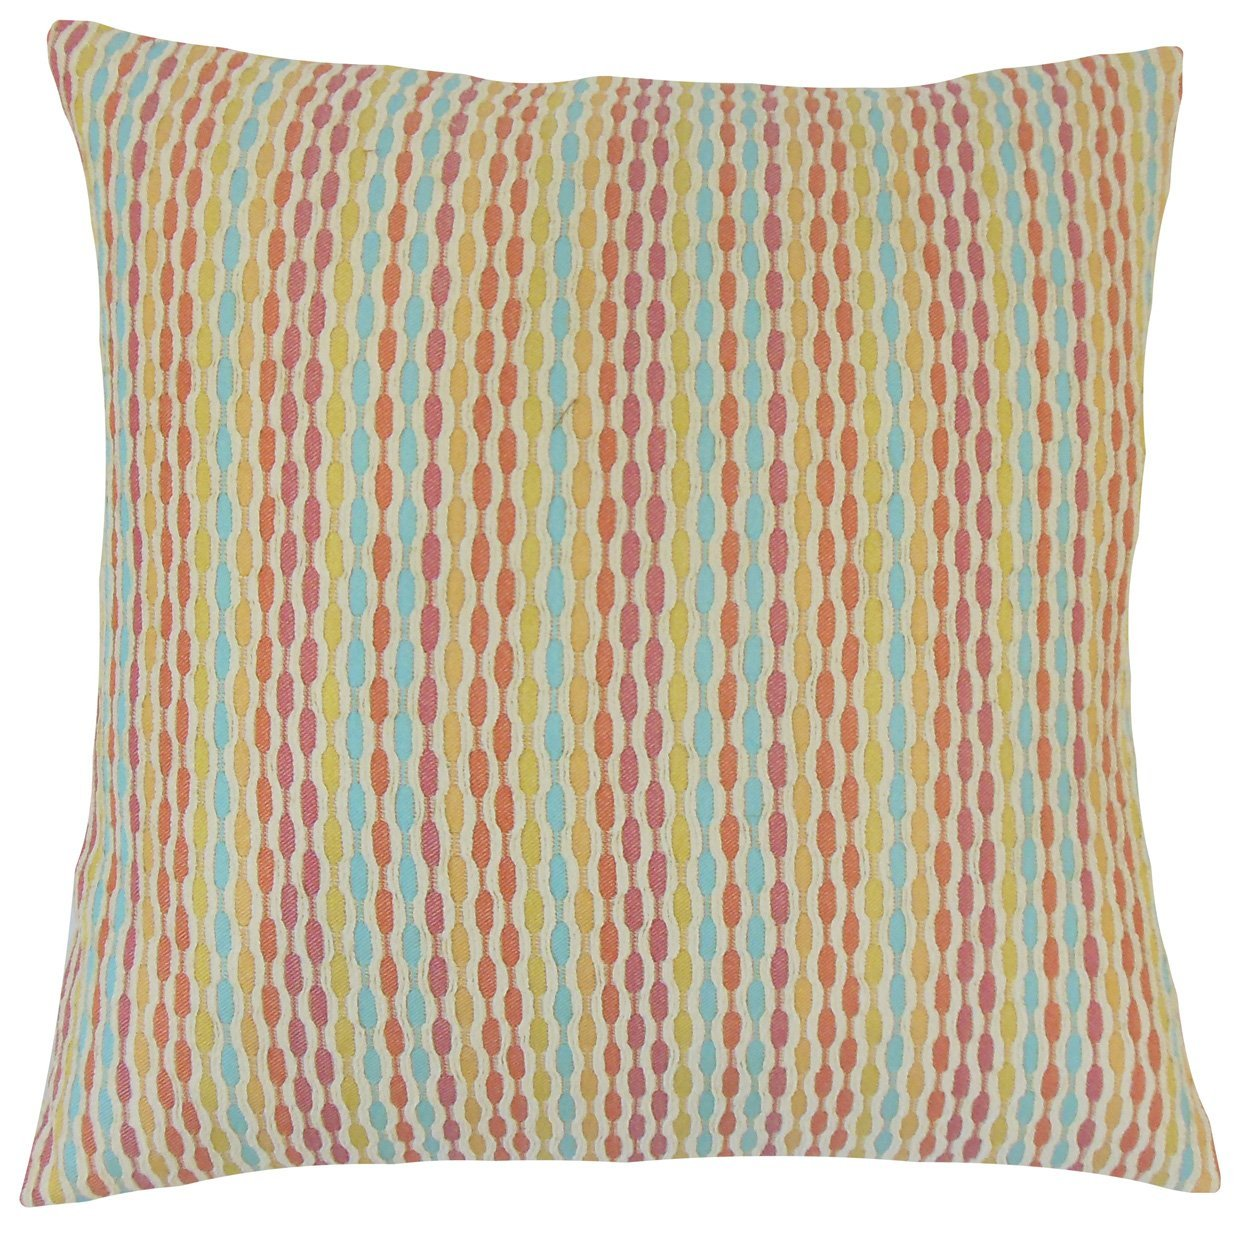 Byrd Throw Pillow Cover